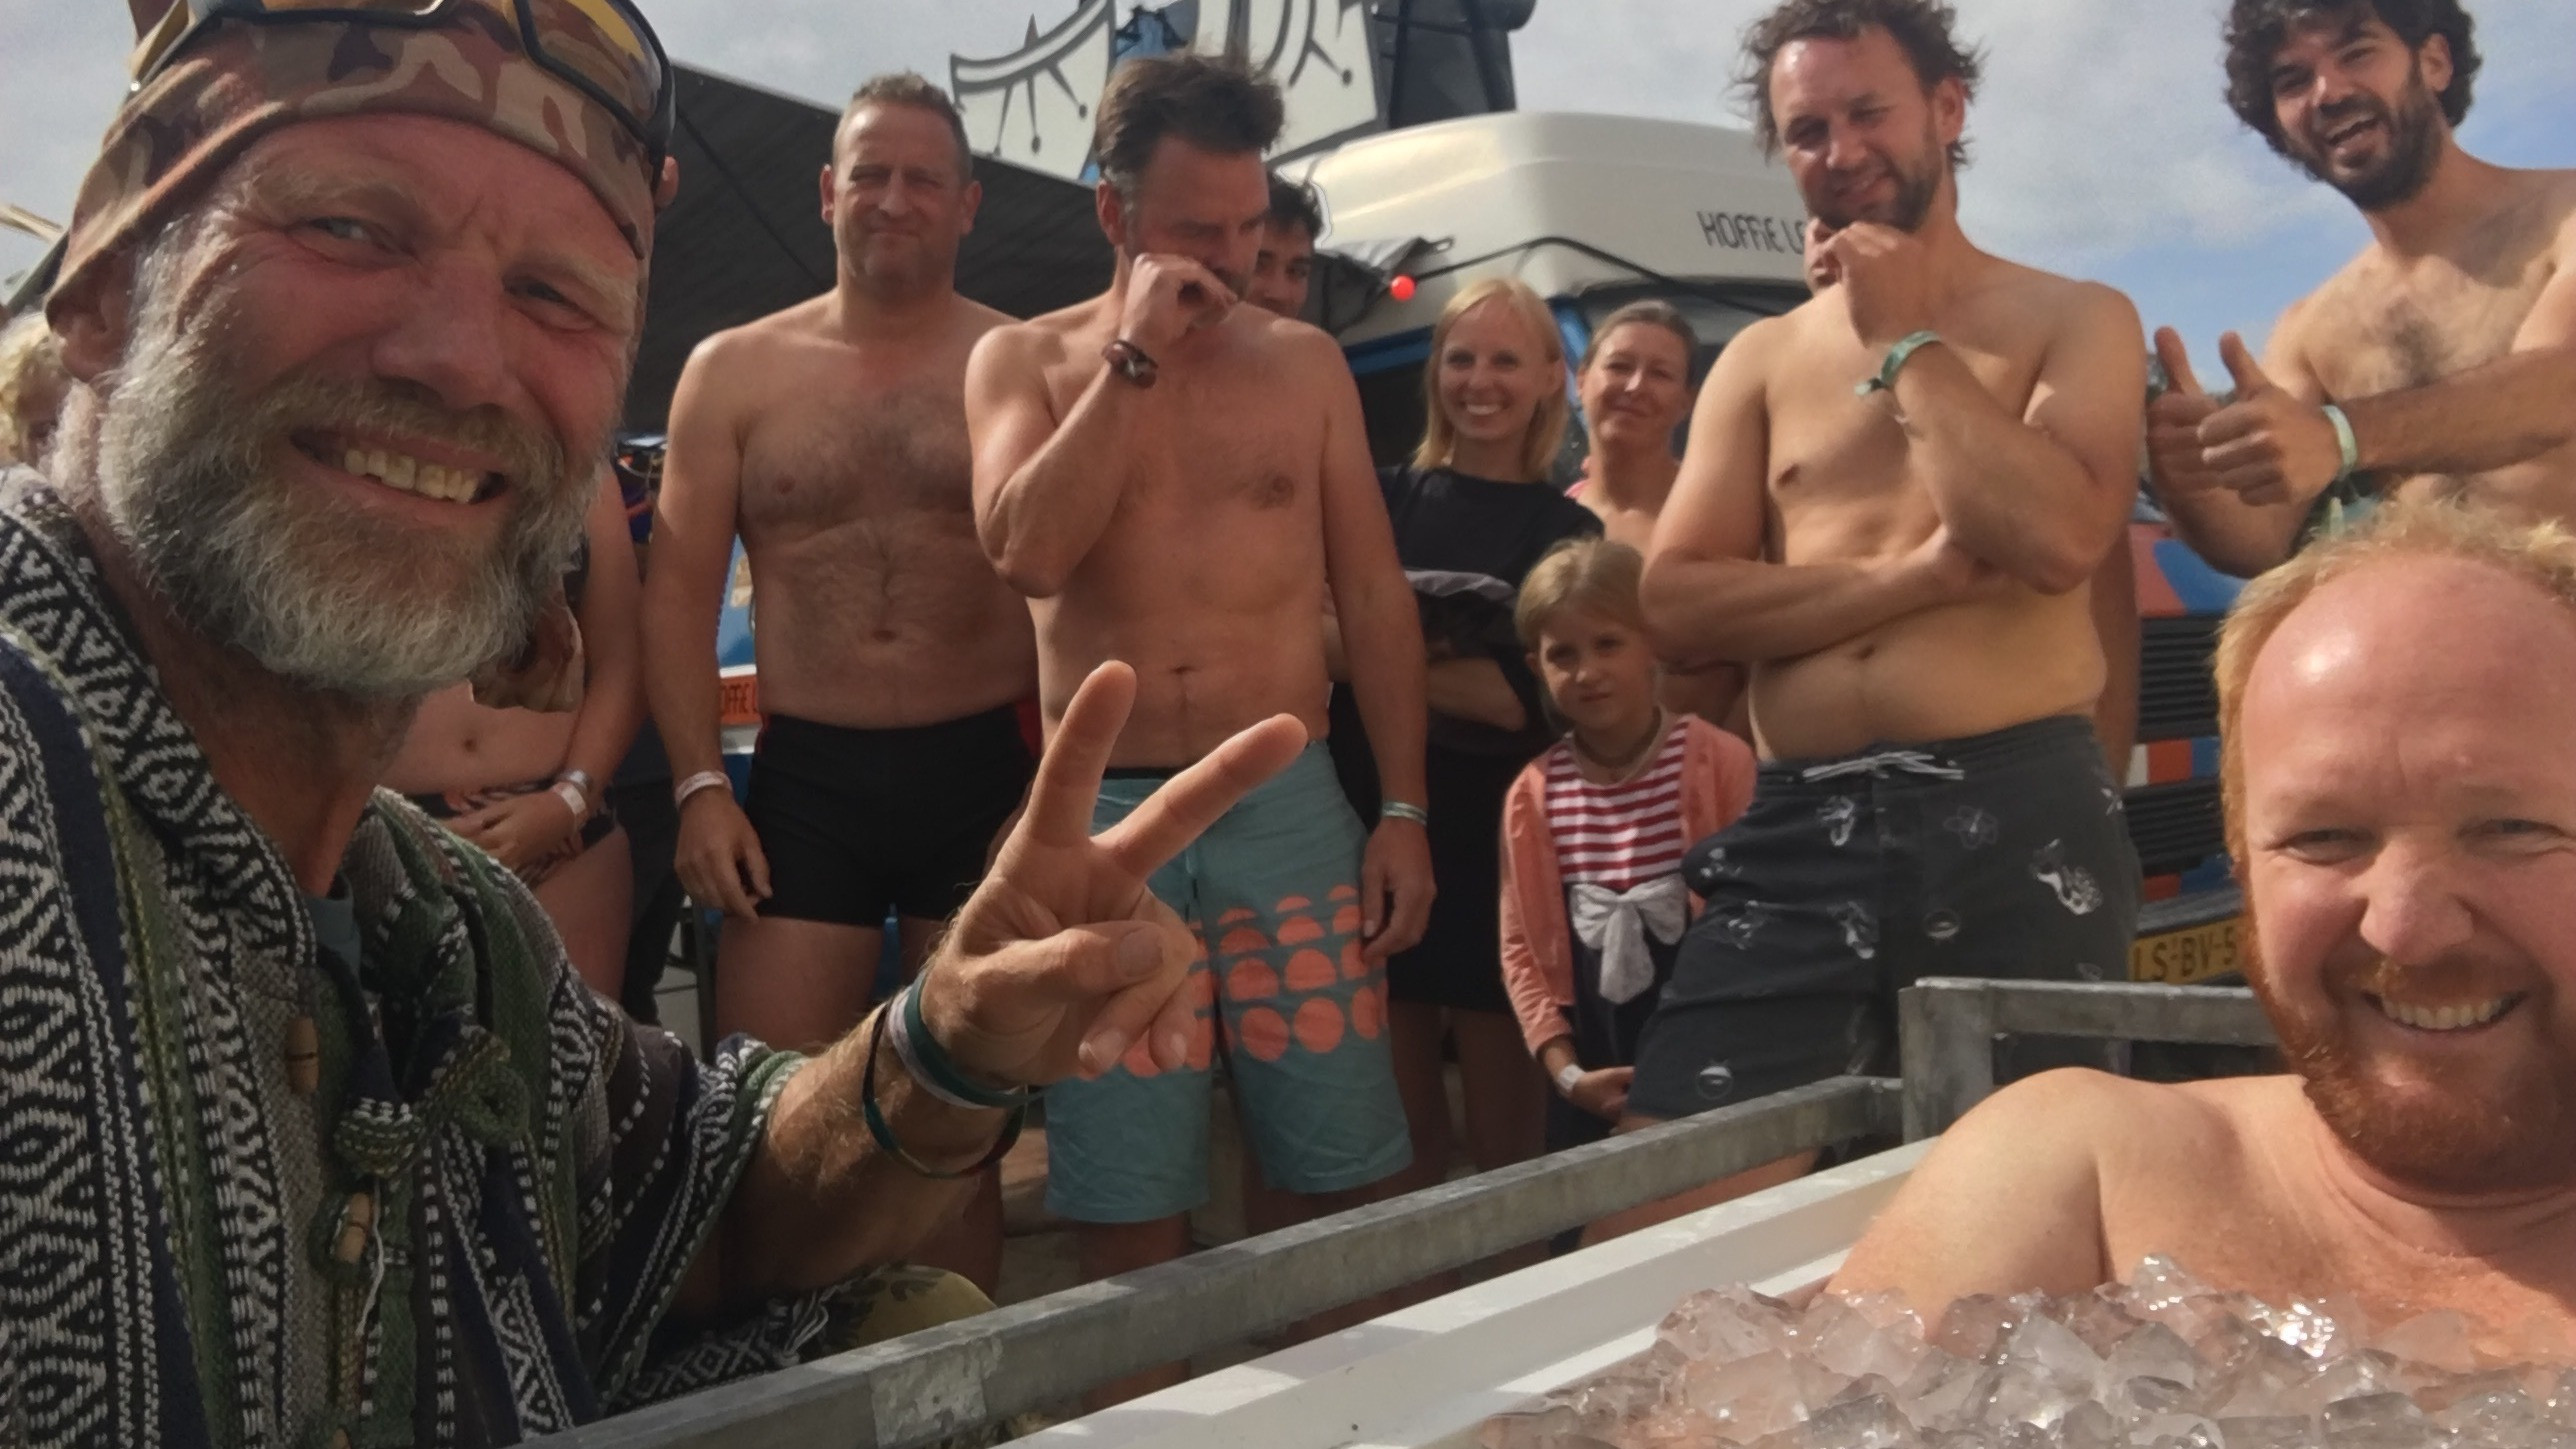 Image 10 of 12 - Experience the Wim Hof Method to get an impression of  at